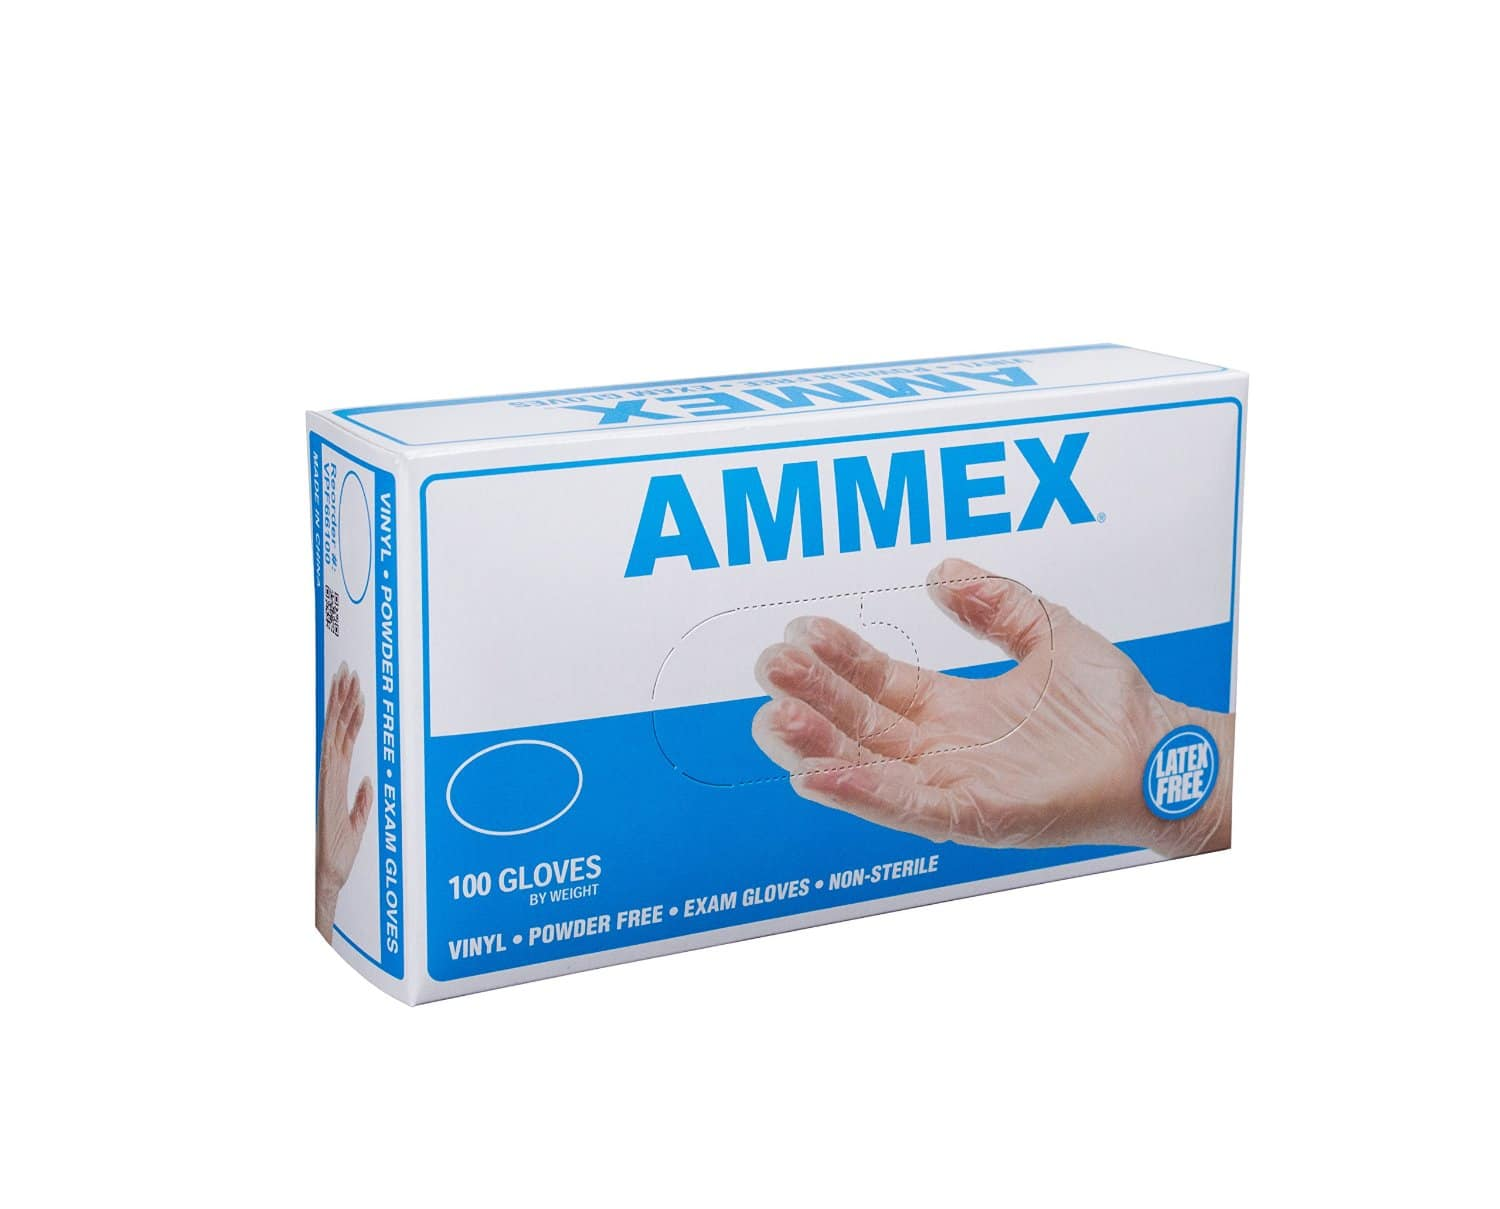 Ammex VPF Vinyl Glove, Medical Exam, Latex Free, Disposable, Powder Free, Small, Large, X-Large (Box of 100) $3.80 or below (S&S) + FS (Prime) (Amazon)